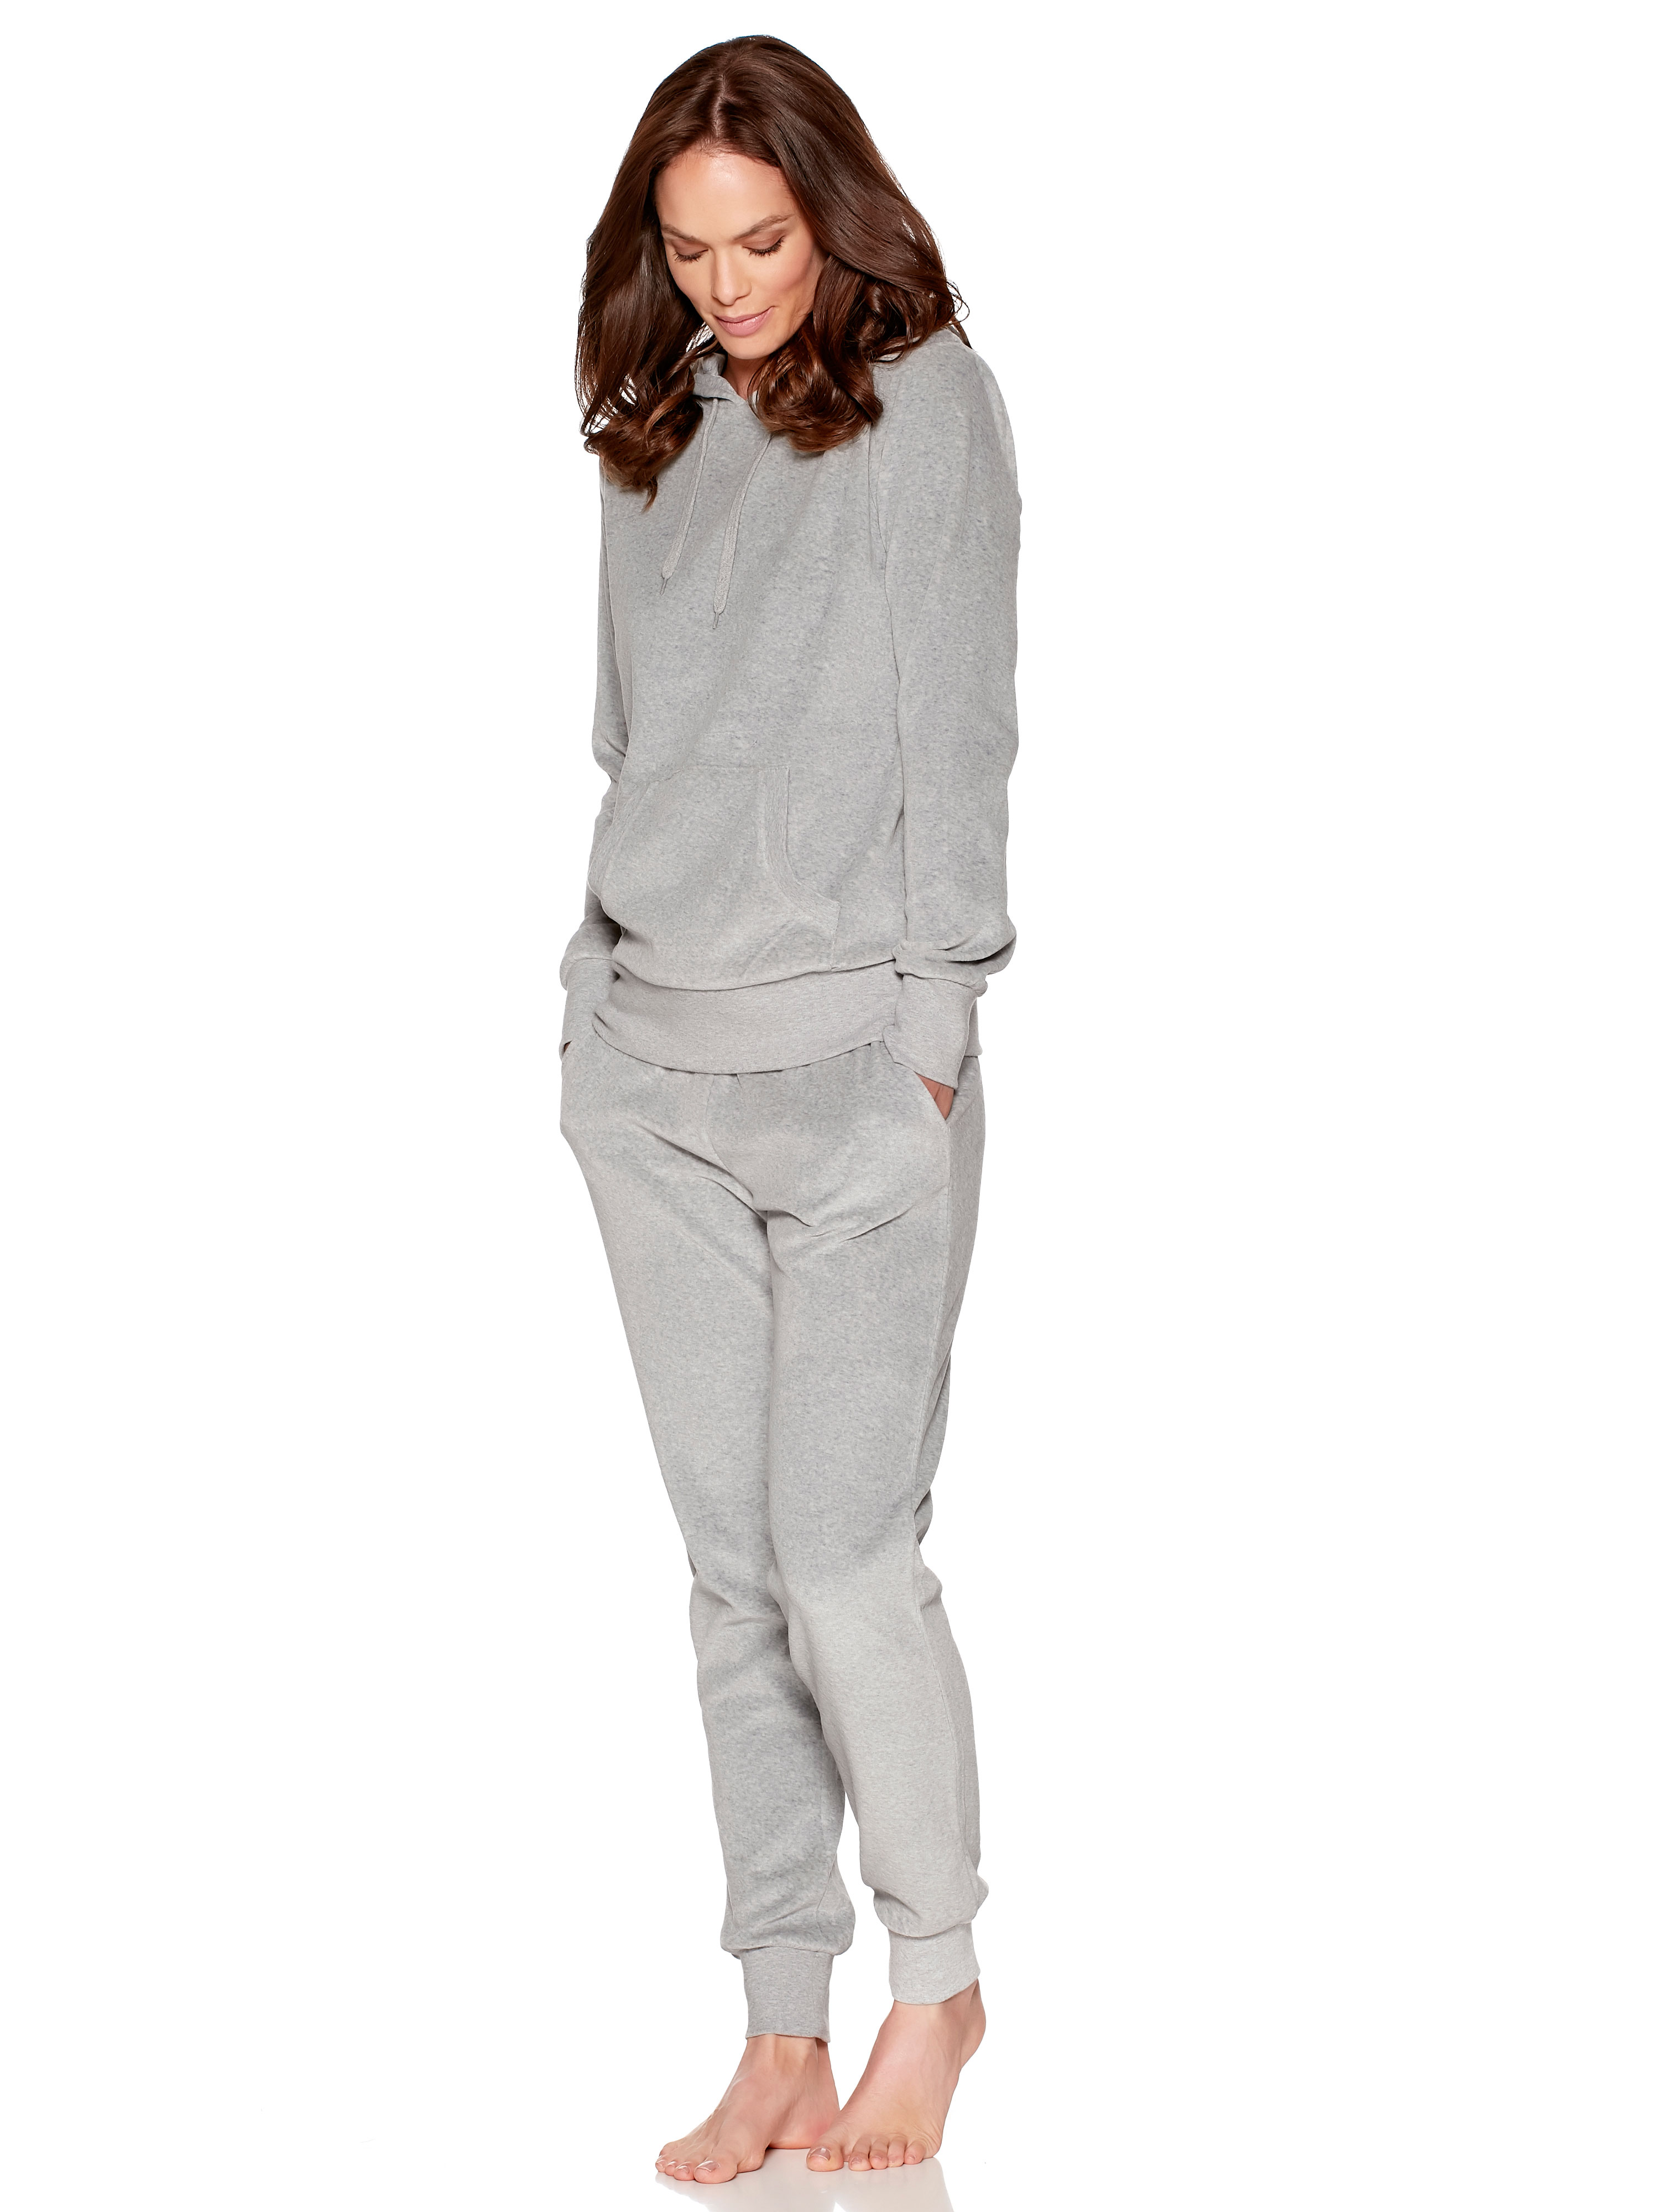 Velour hoody and jogger loungewear set